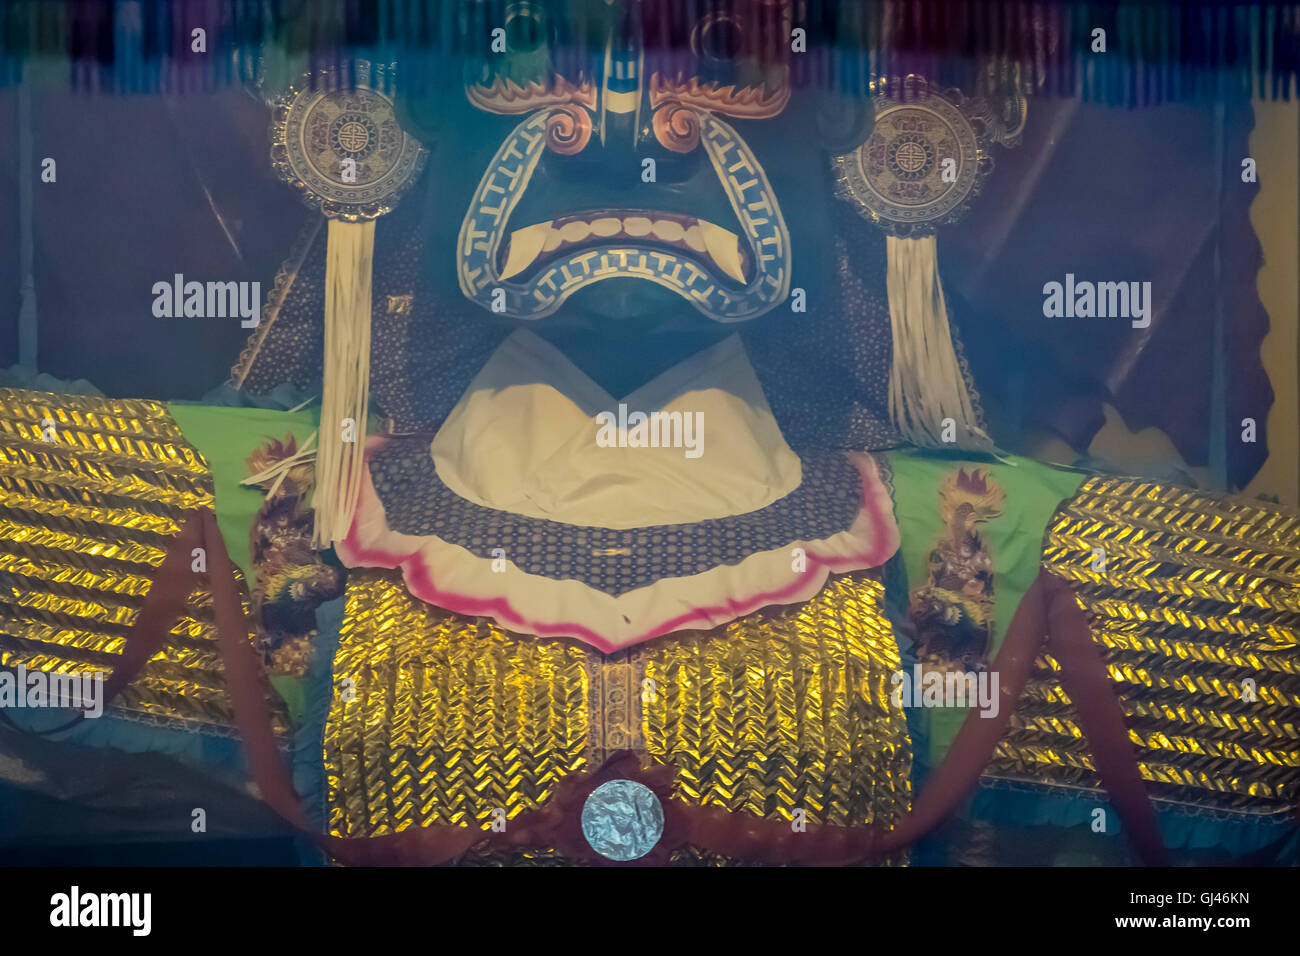 Kuala Lumpur, Malaysia. 12th August 2016. Day 2: From the thick joss smoke, King Hades looks out at the dinner guests. - Stock Image